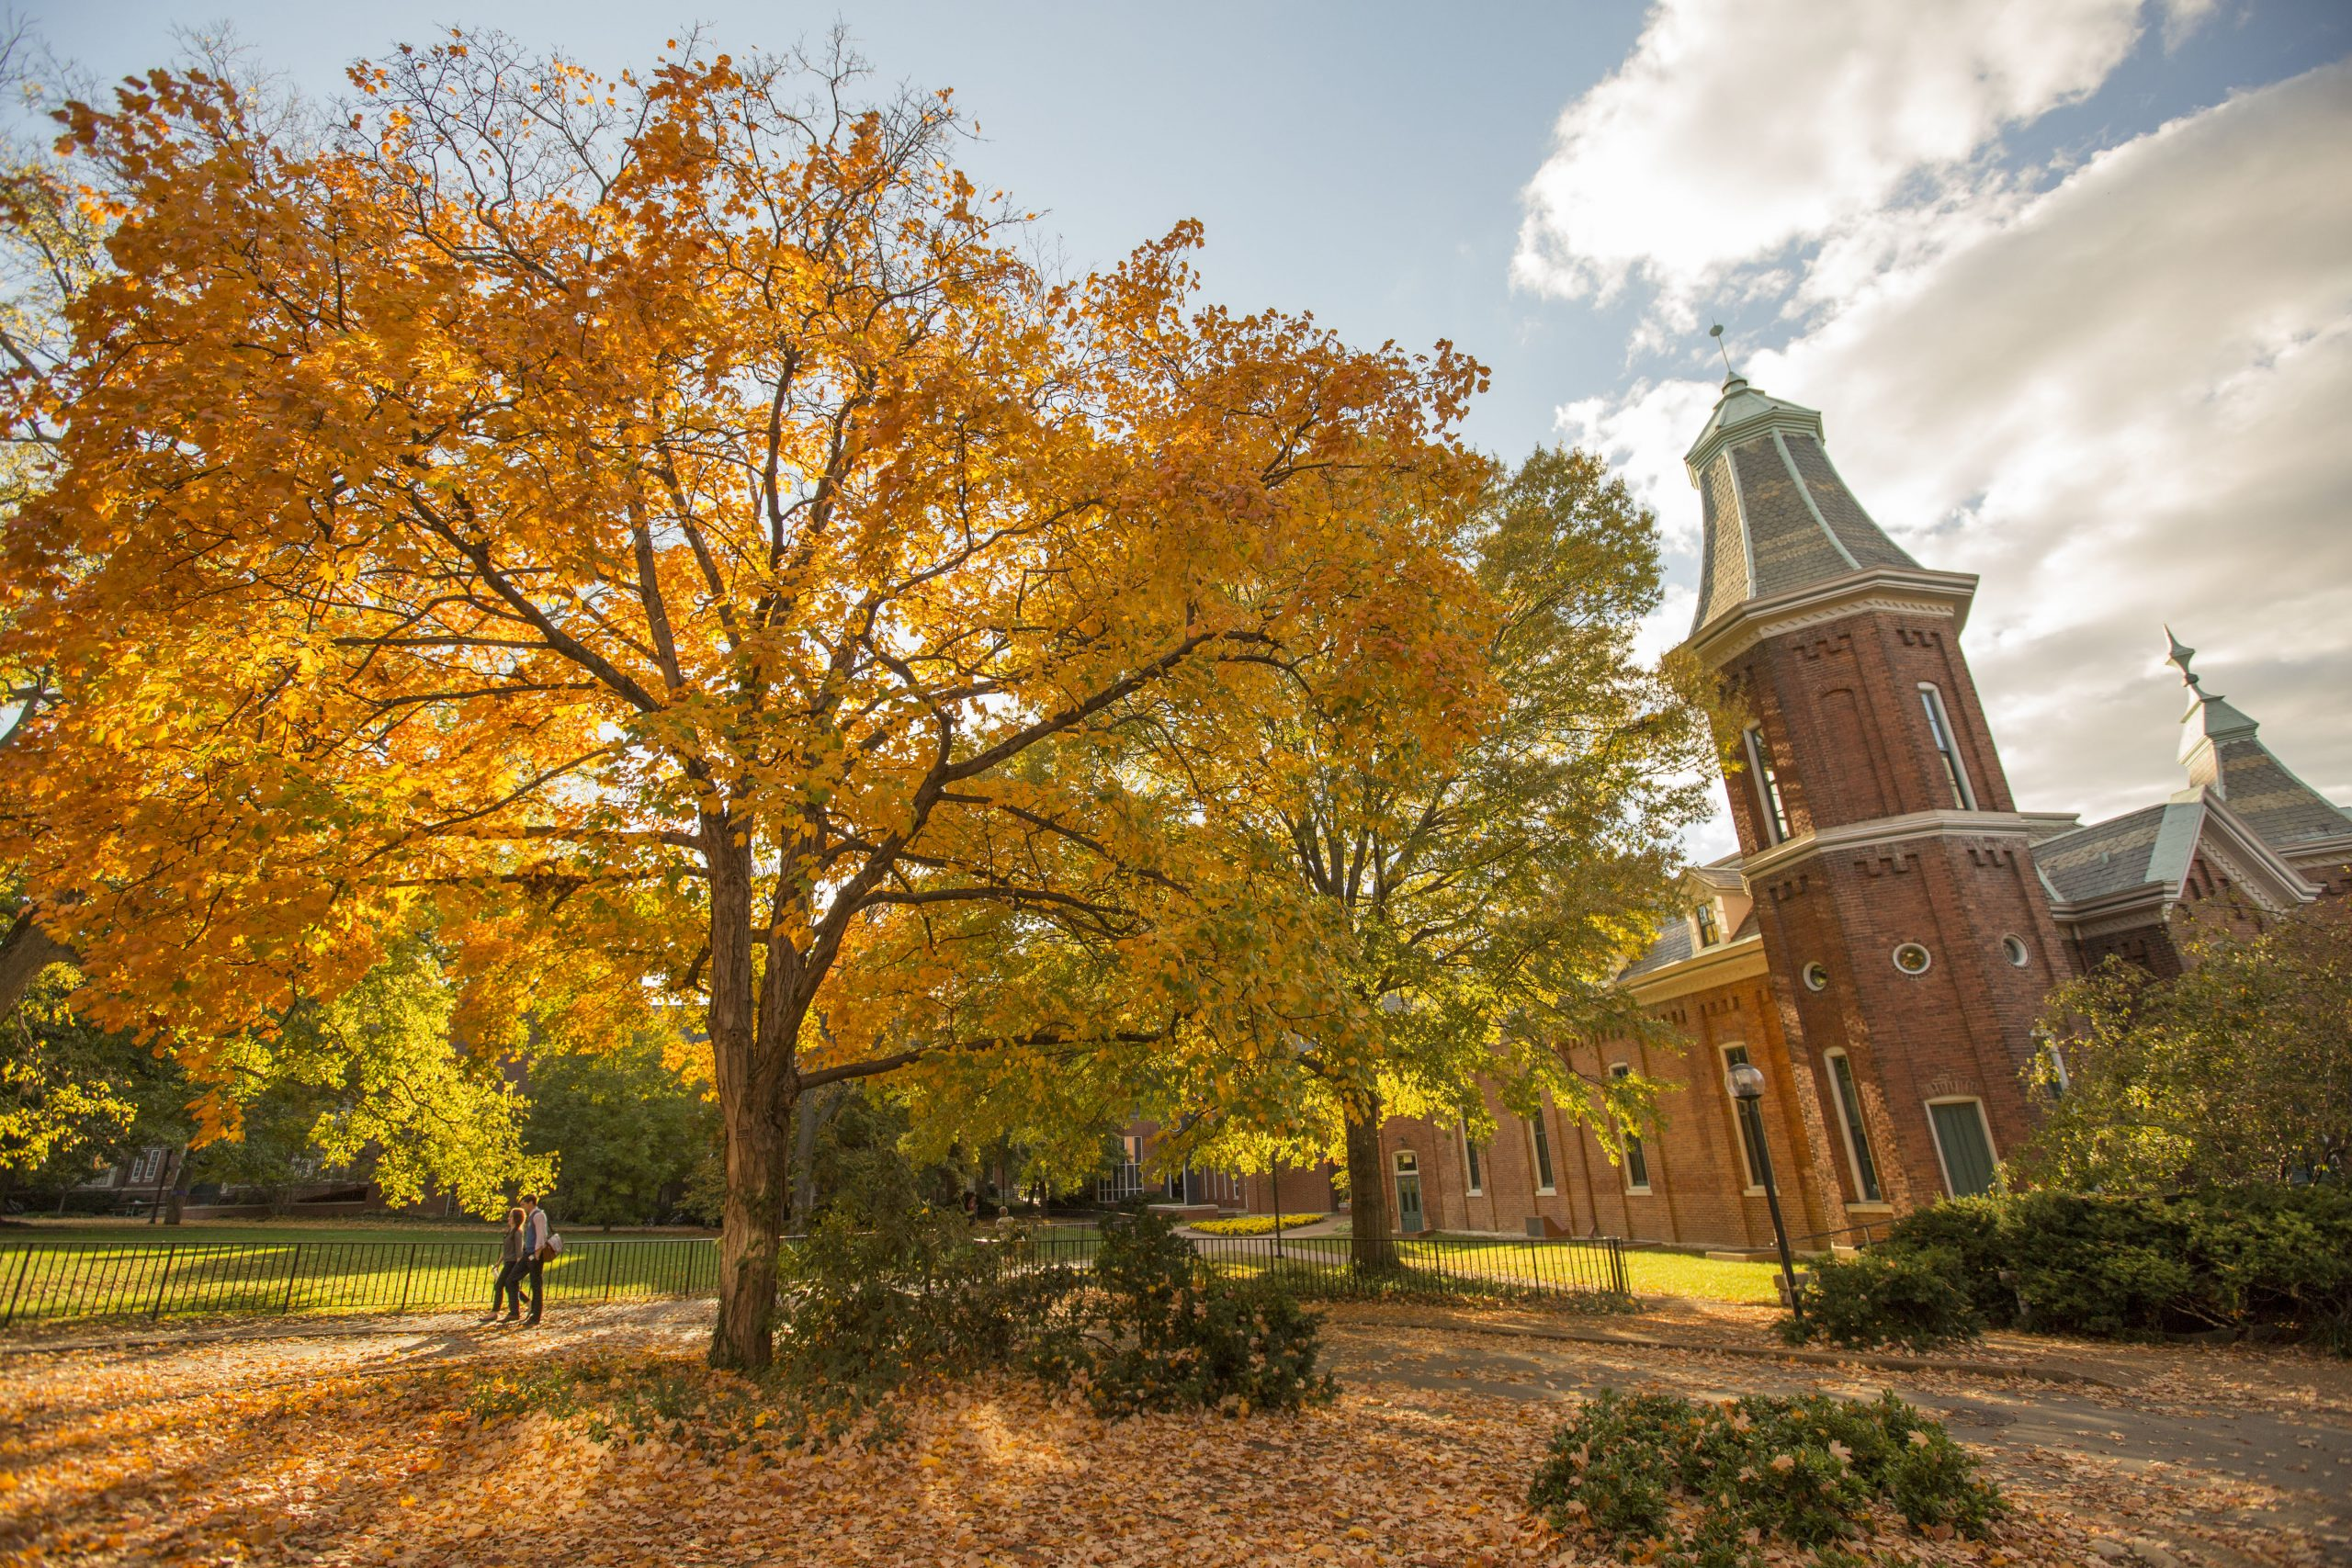 Image of Vanderbilt Campus and The Old Gym in fall